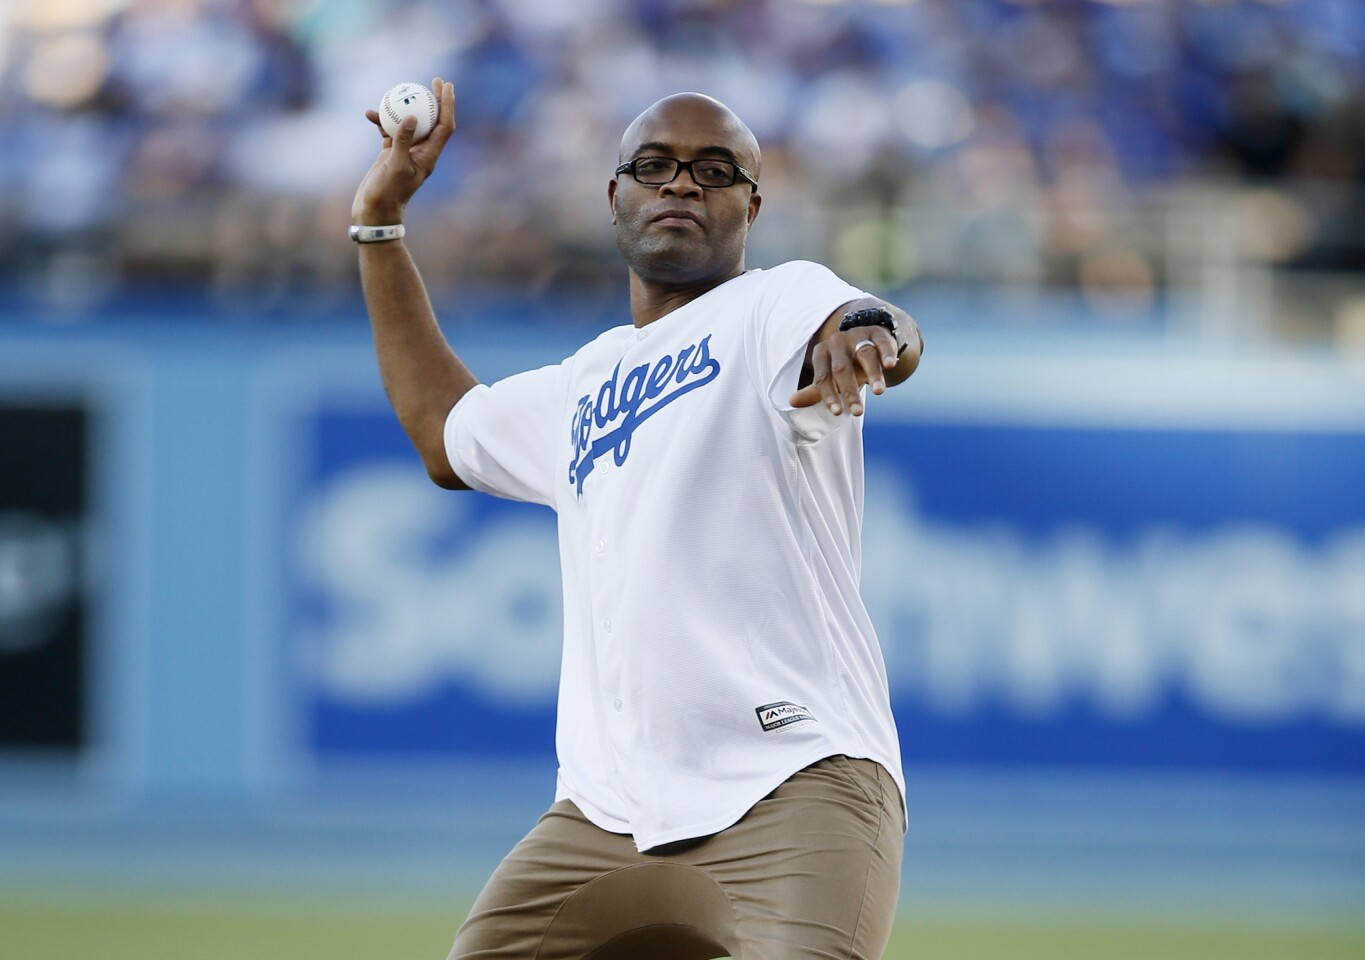 Mixed martial artist and former UFC fighter Anderson Silva throws out a ceremonial first pitch before the baseball game between the Los Angeles Dodgers and Milwaukee Brewers, Saturday, July 11, 2015, in Los Angeles. (AP Photo/Danny Moloshok)